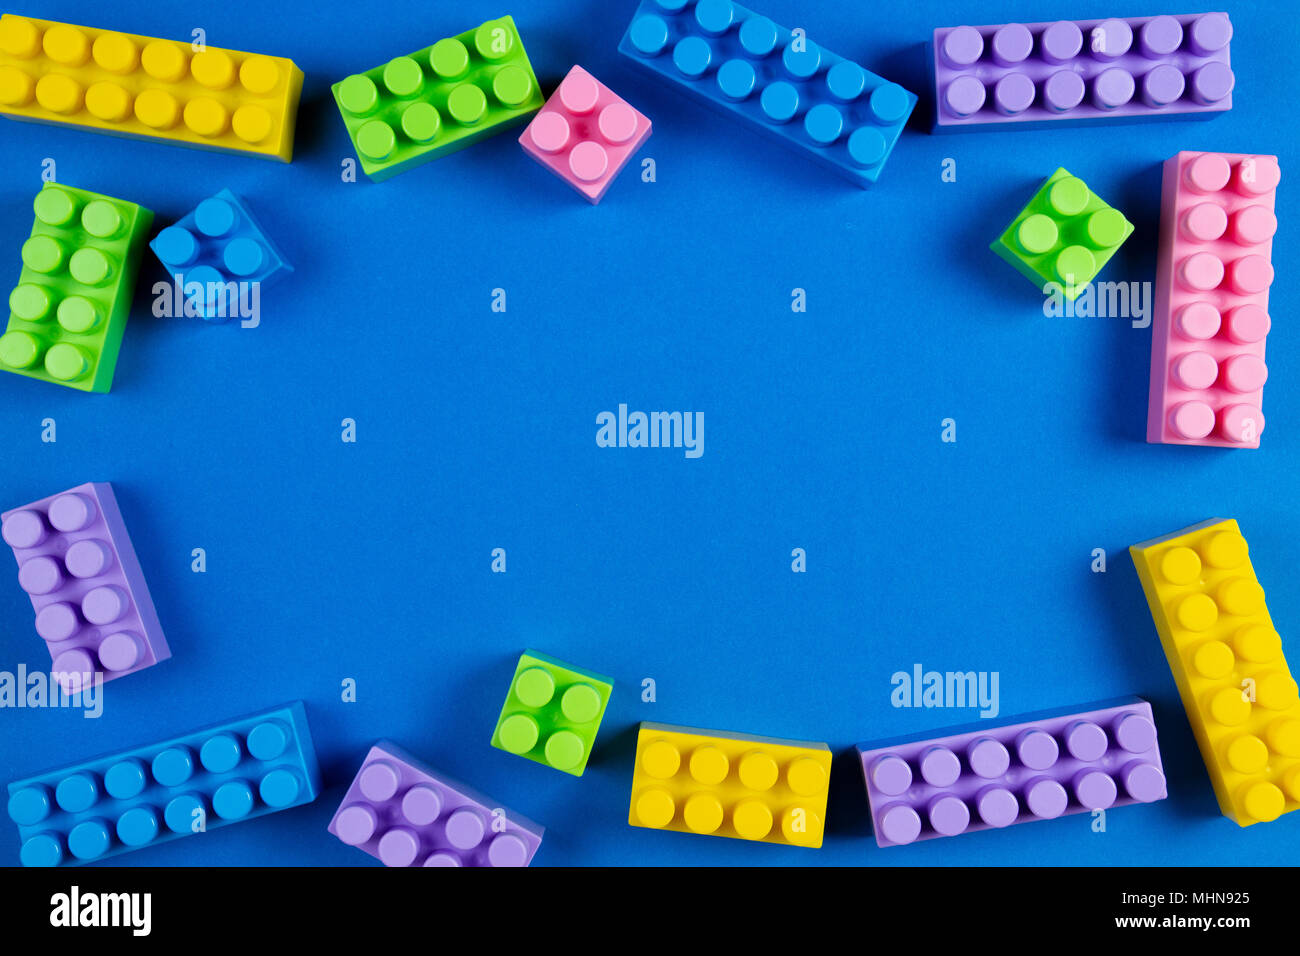 Colorful Plastic Construction Blocks On Blue Background As Kids Toys